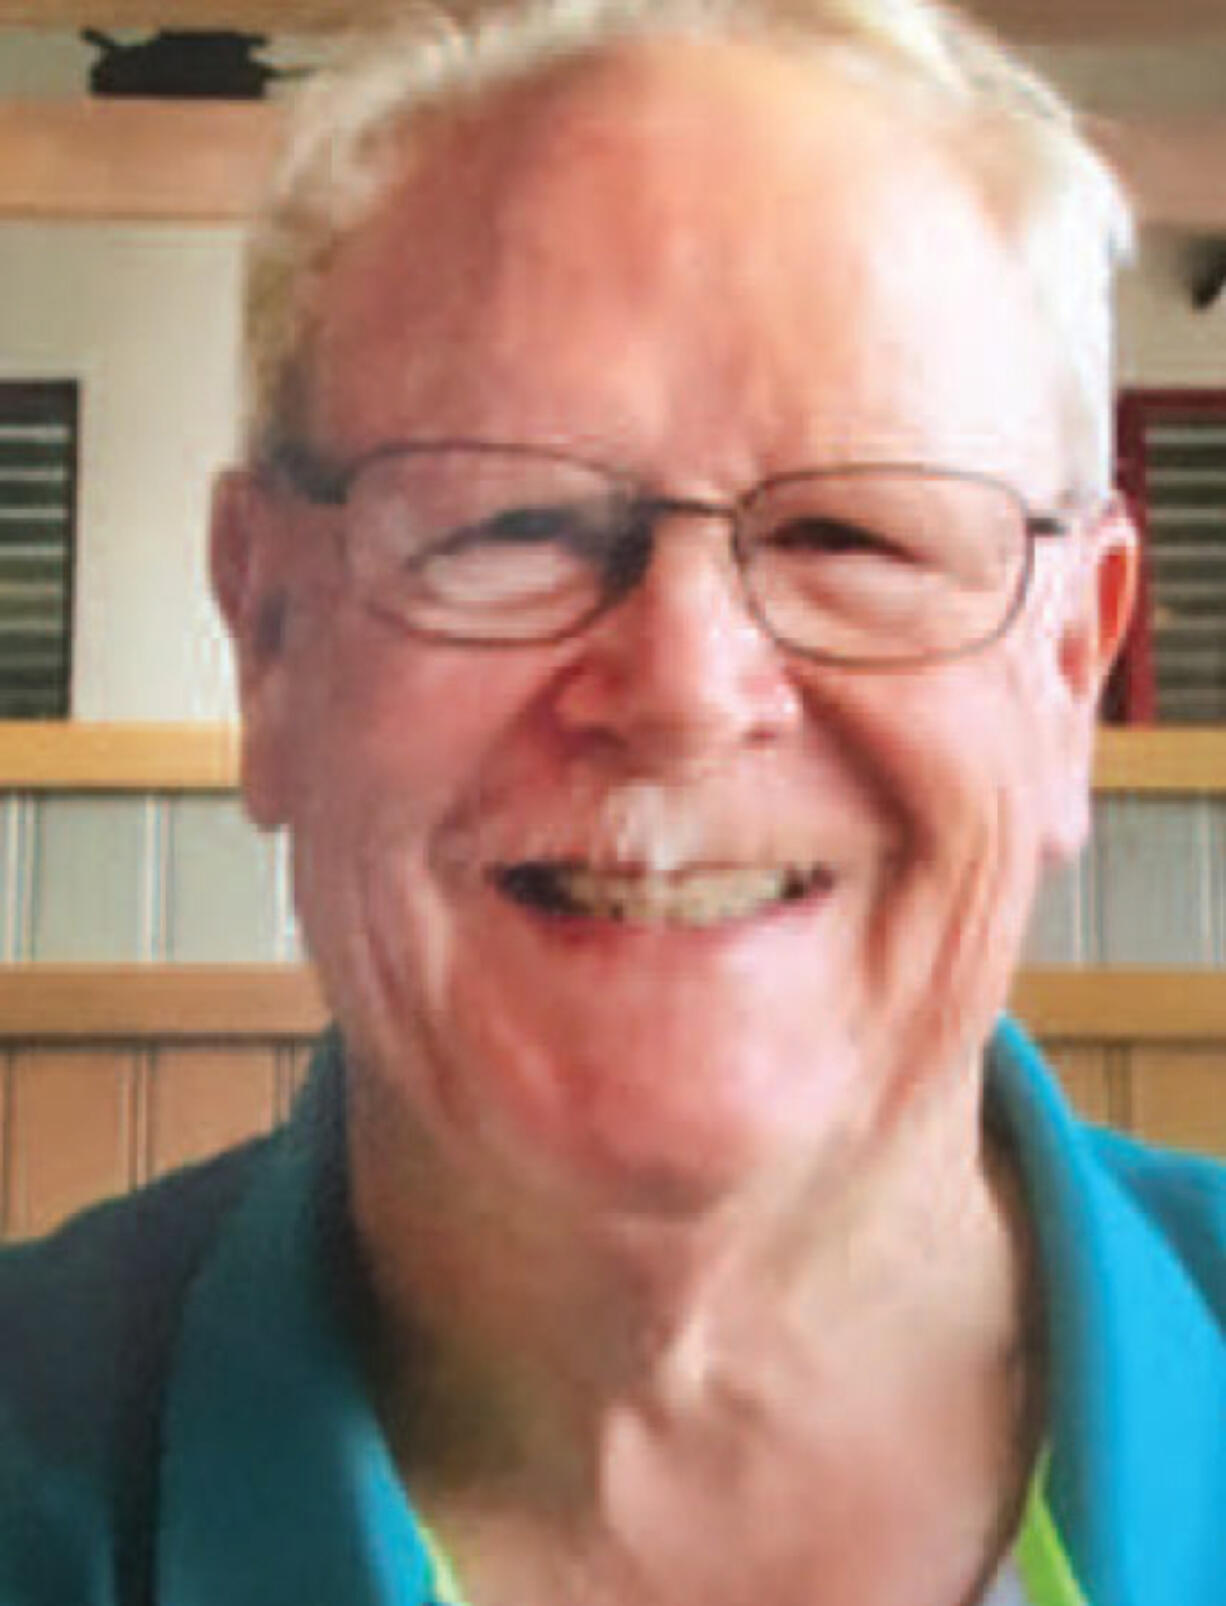 Kevan Holdsworth worked at the Camas mill from 1964 to 2001, according to a press release from Schroeter Goldmark & Bender, the Seattle-based law firm that represented his family.